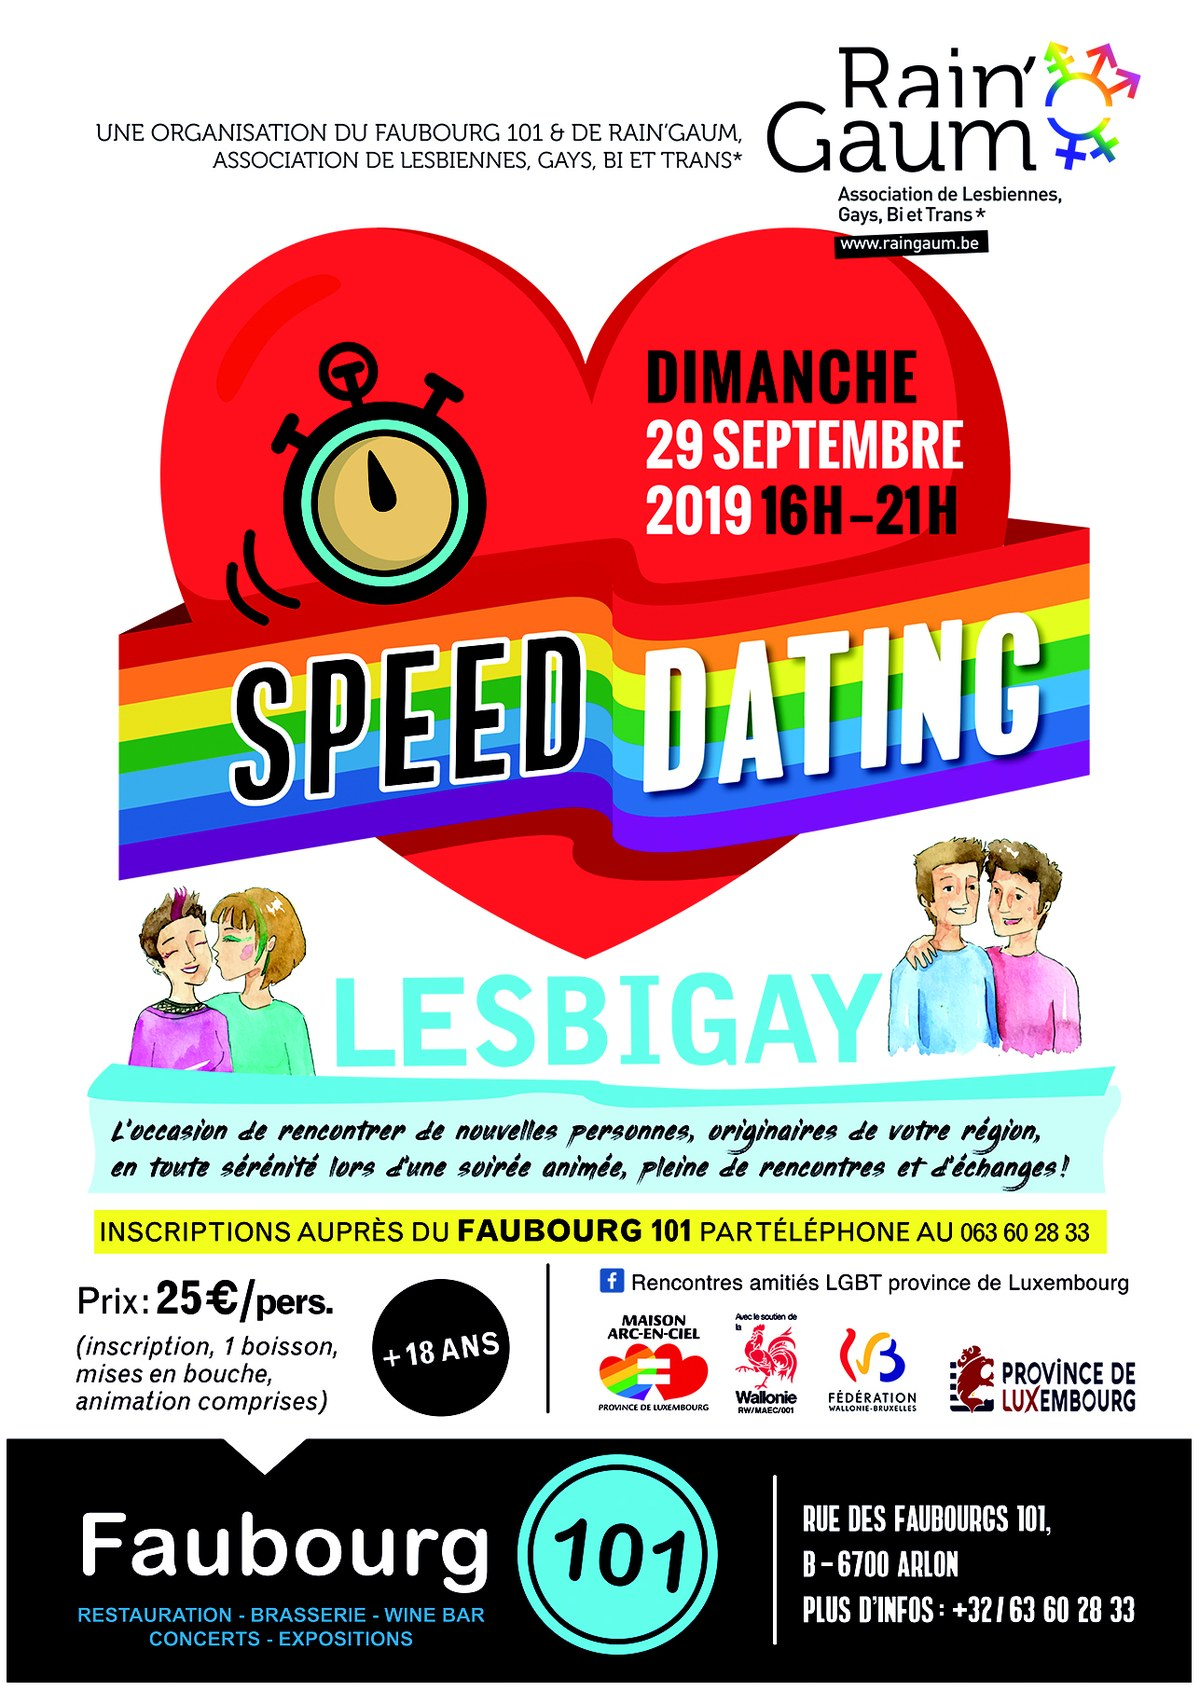 Speed rencontres conseils gay